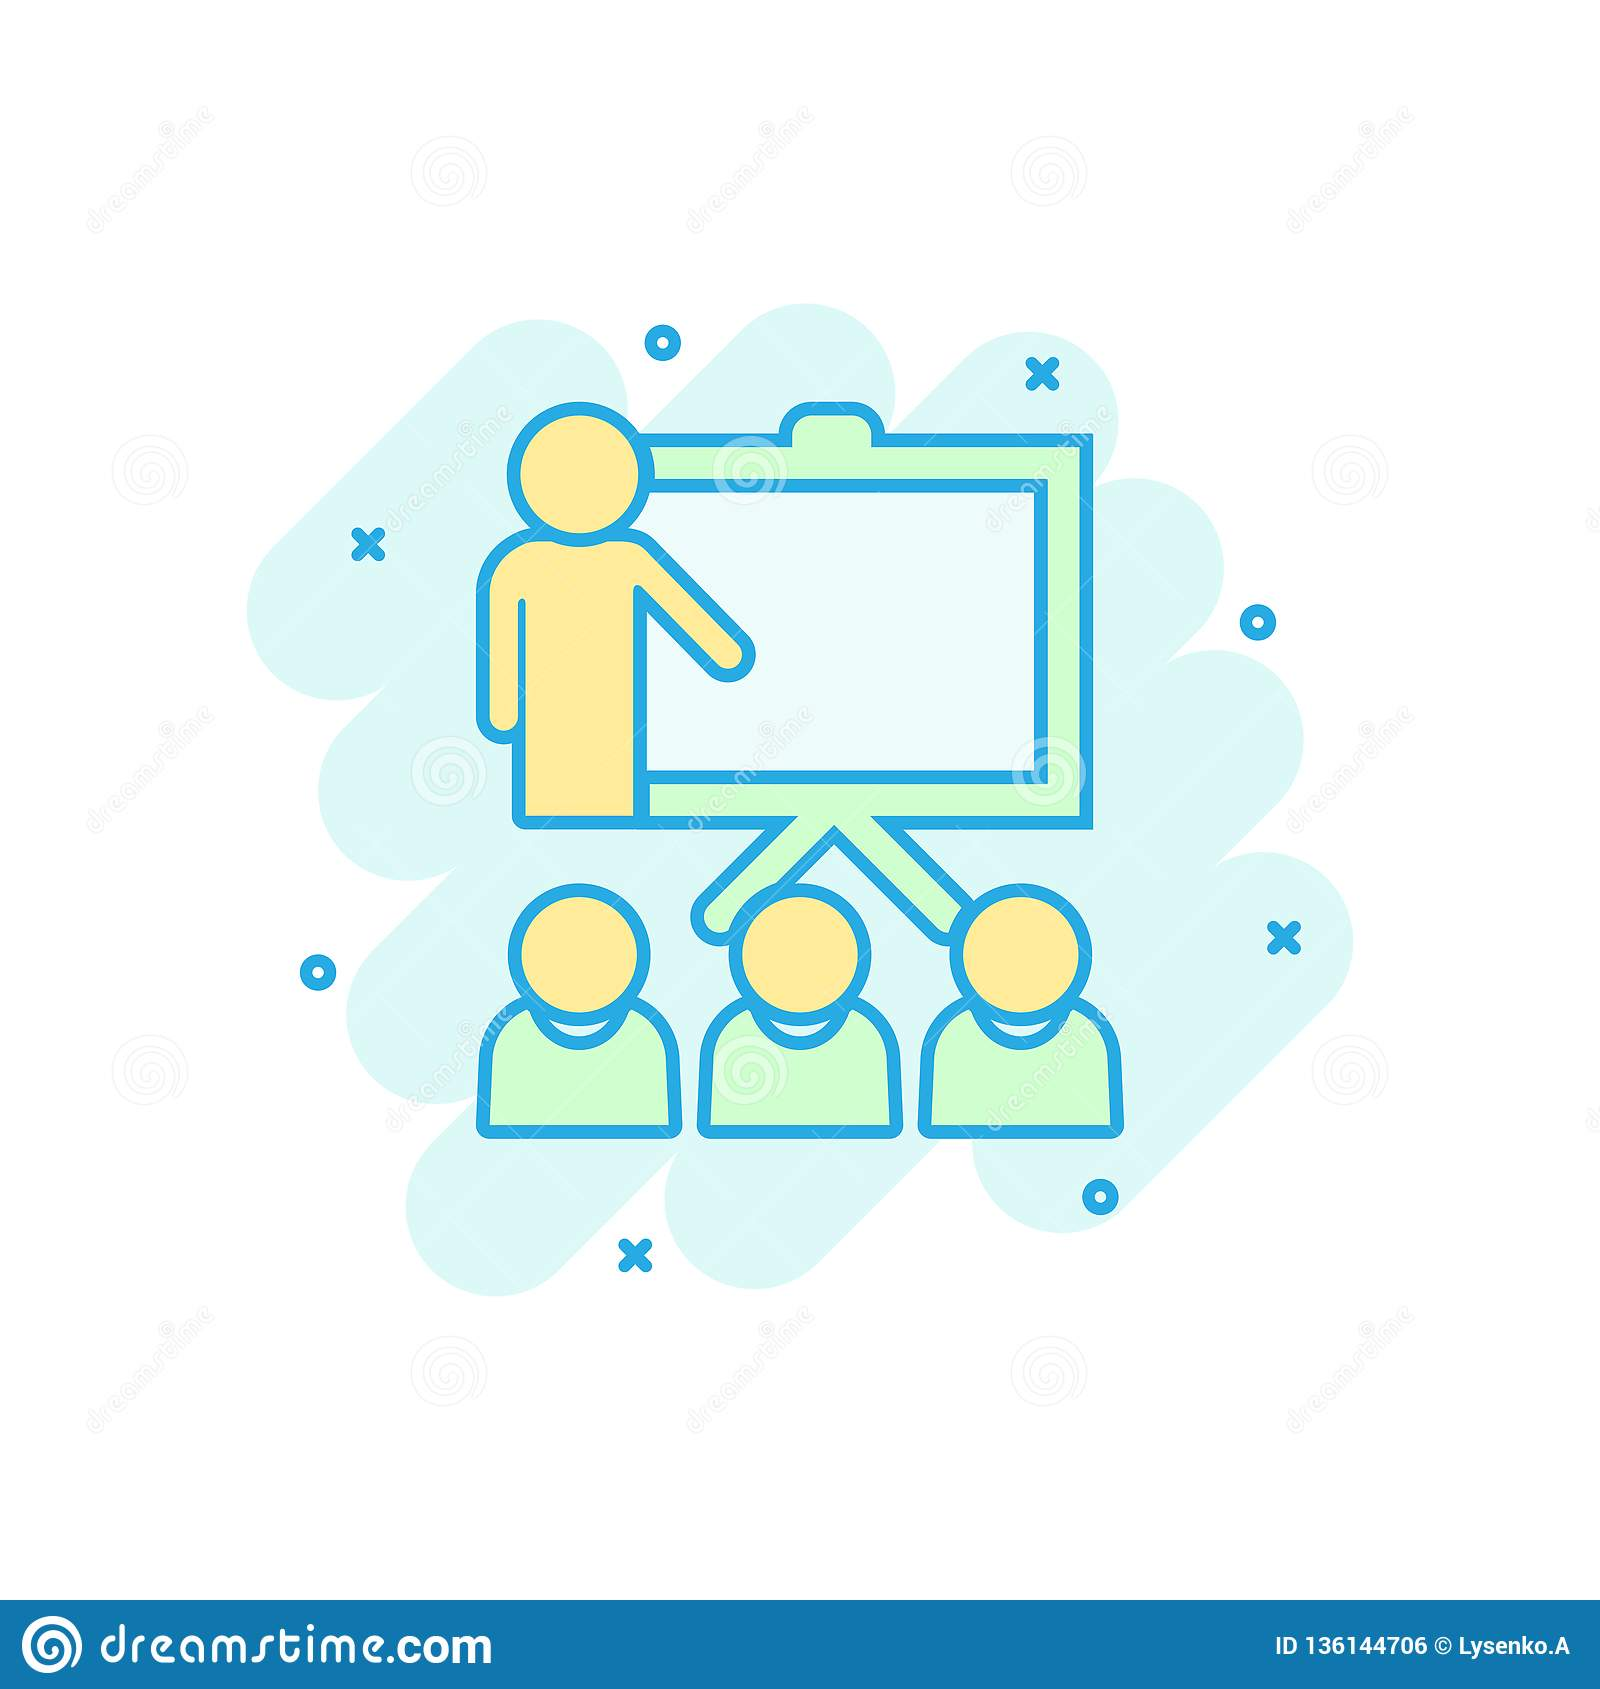 Training education icon in comic style. People seminar vector cartoon illustration pictogram. School classroom lesson business